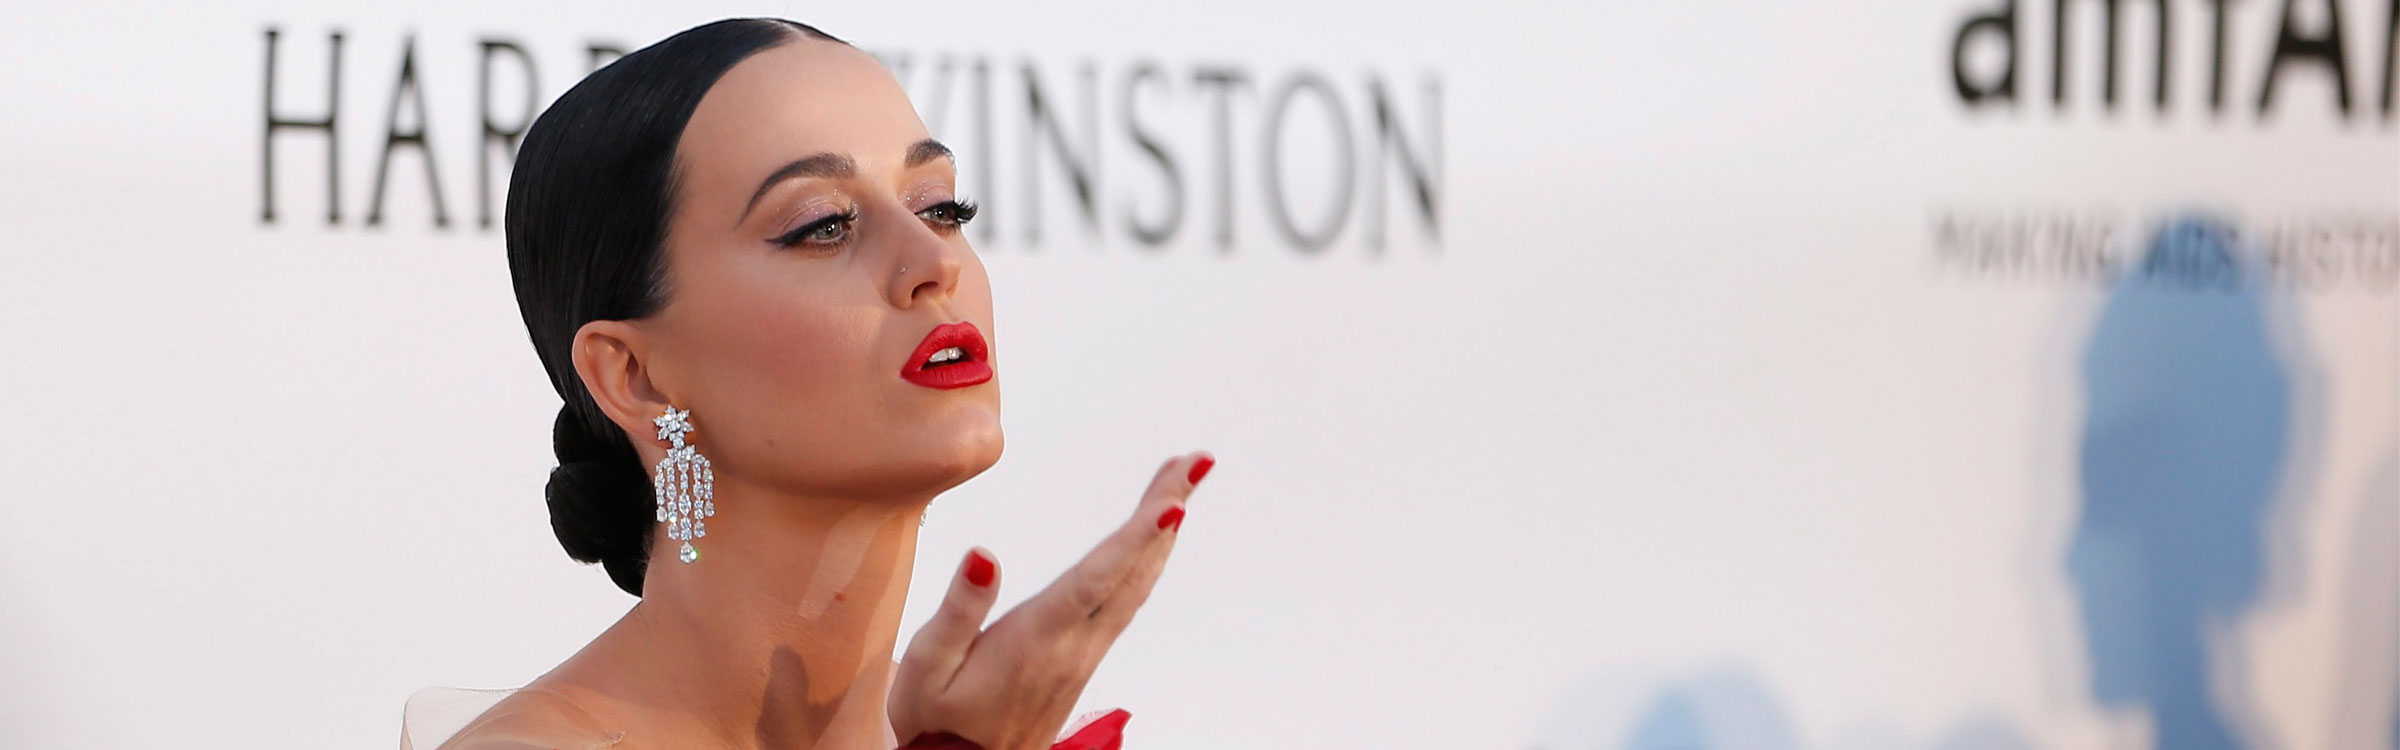 Katy perry cannes header